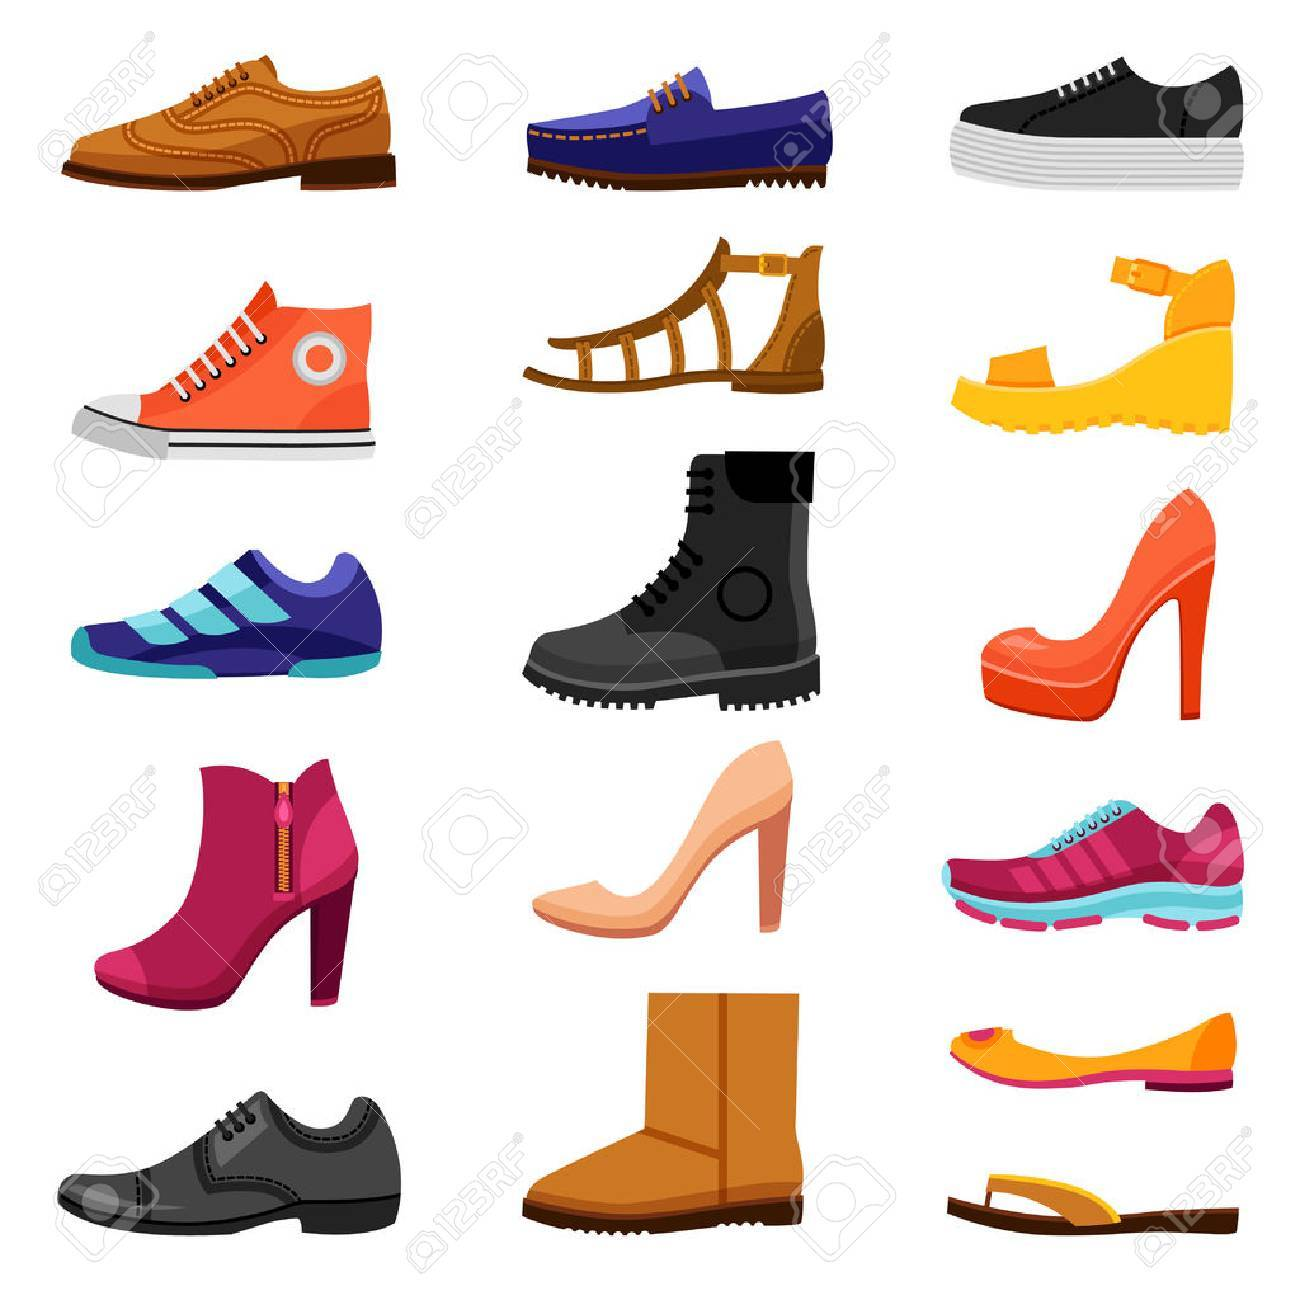 Footwear flat colored icons set of male and female shoes boots sandals for different seasons isolated vector illustration - 59152206